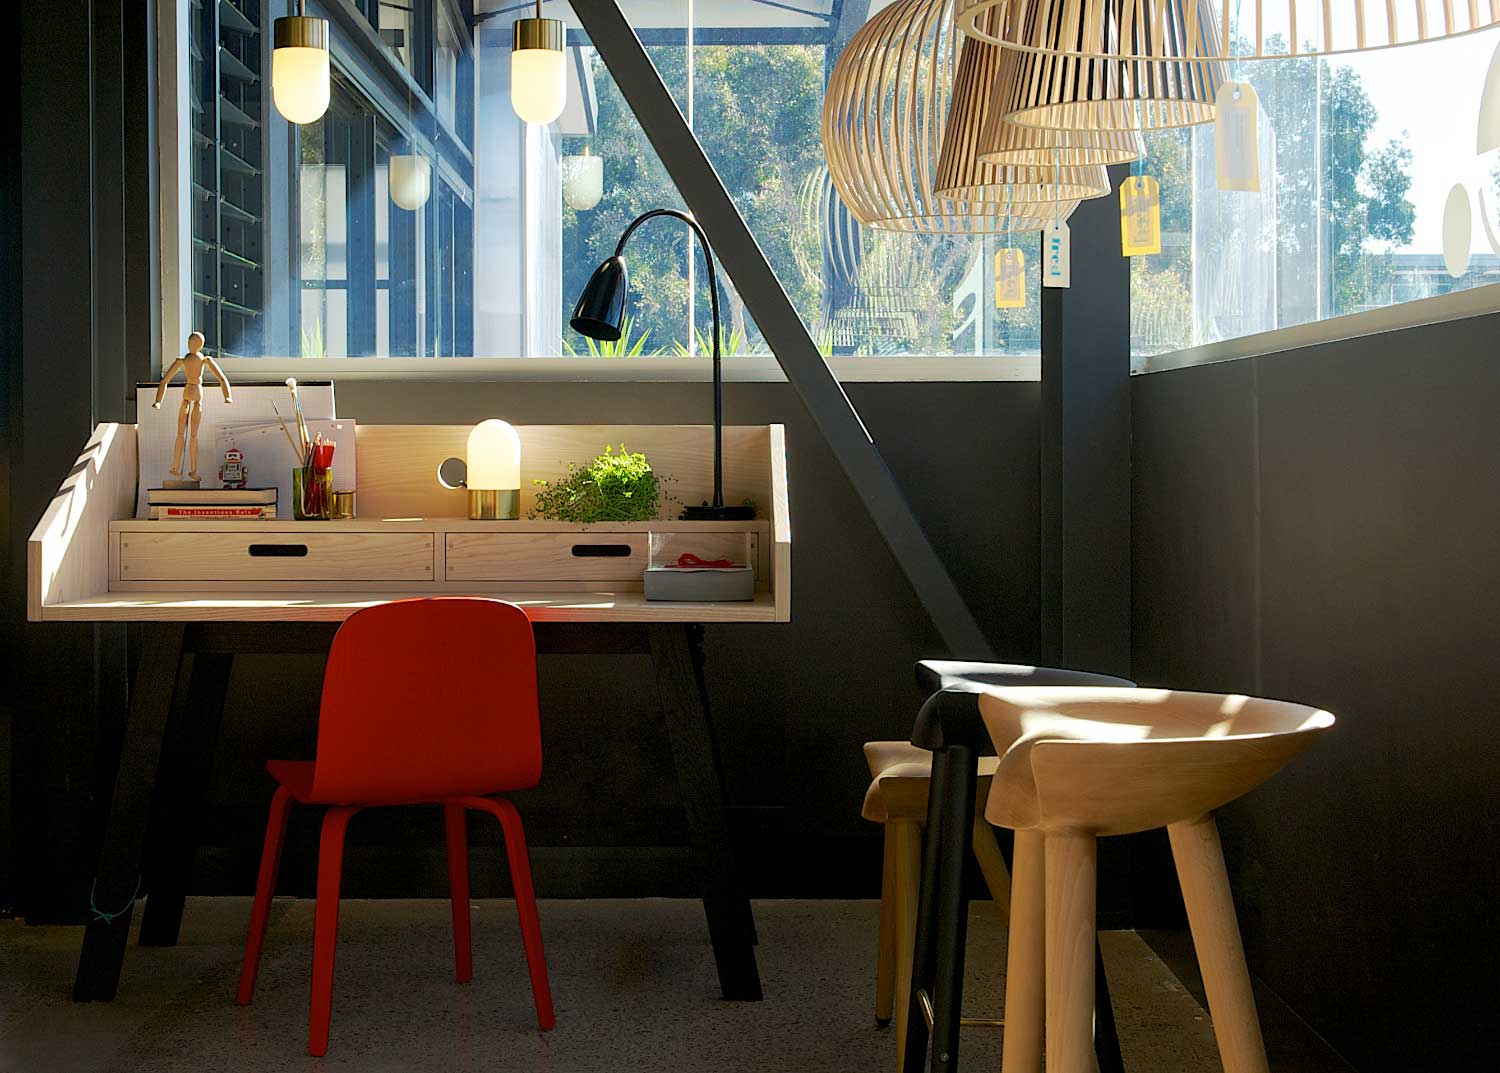 Fred International Sydney Showroom by Yellowtrace, MUN15 Desk by Slowwood, Muuto Visu chair in red., Vox brass table lamp & Arkipelag black table lamp from Ruben Lighting, Vox ceiling light, Secto Design lights. By Lassen ML 42 timber stools.